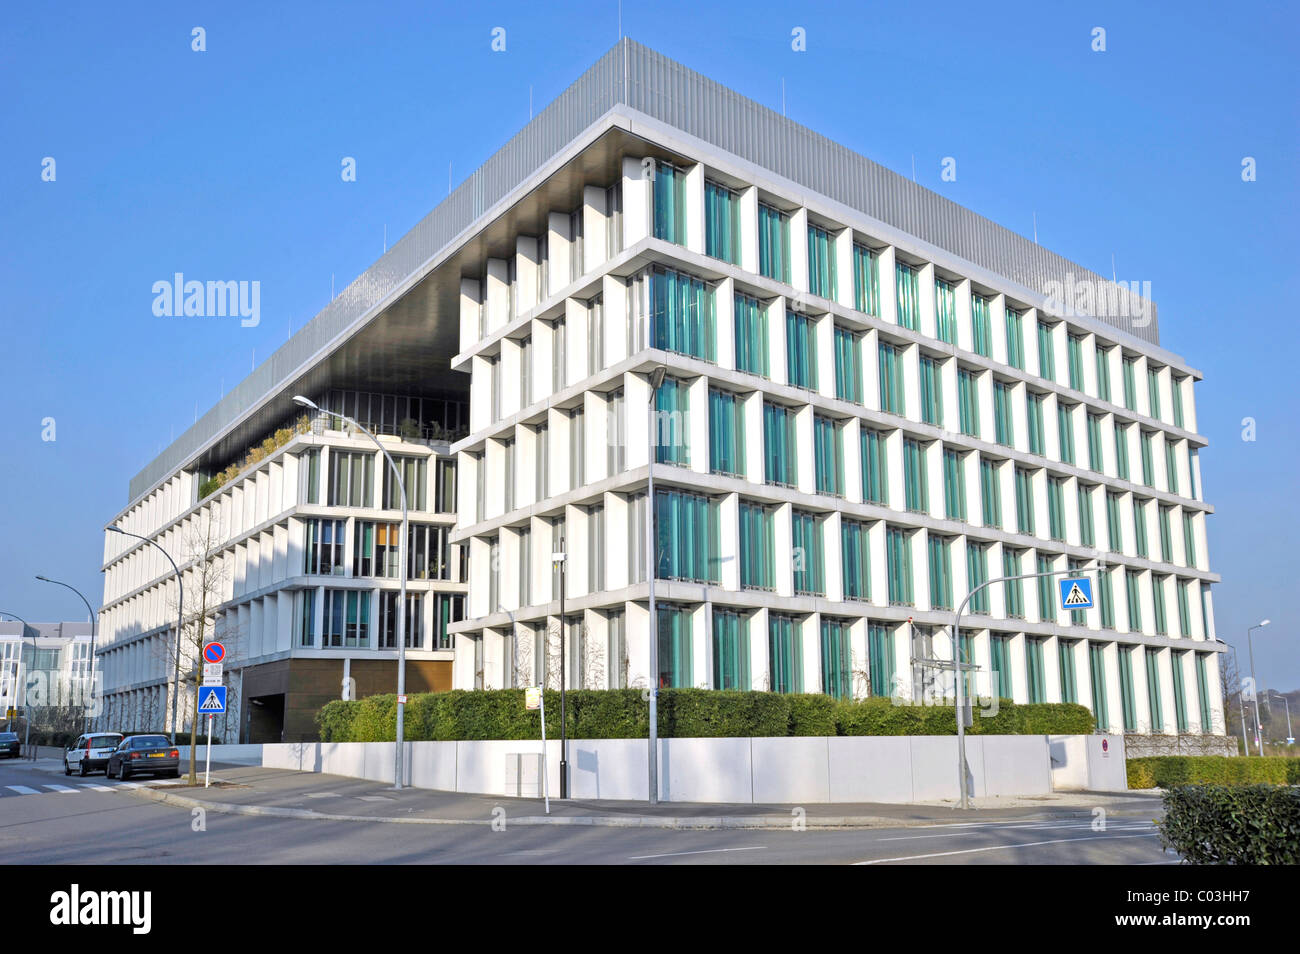 Commerzbank building, Rue Edward Steichen street, Kirchberg district, city of Luxembourg, Europe - Stock Image